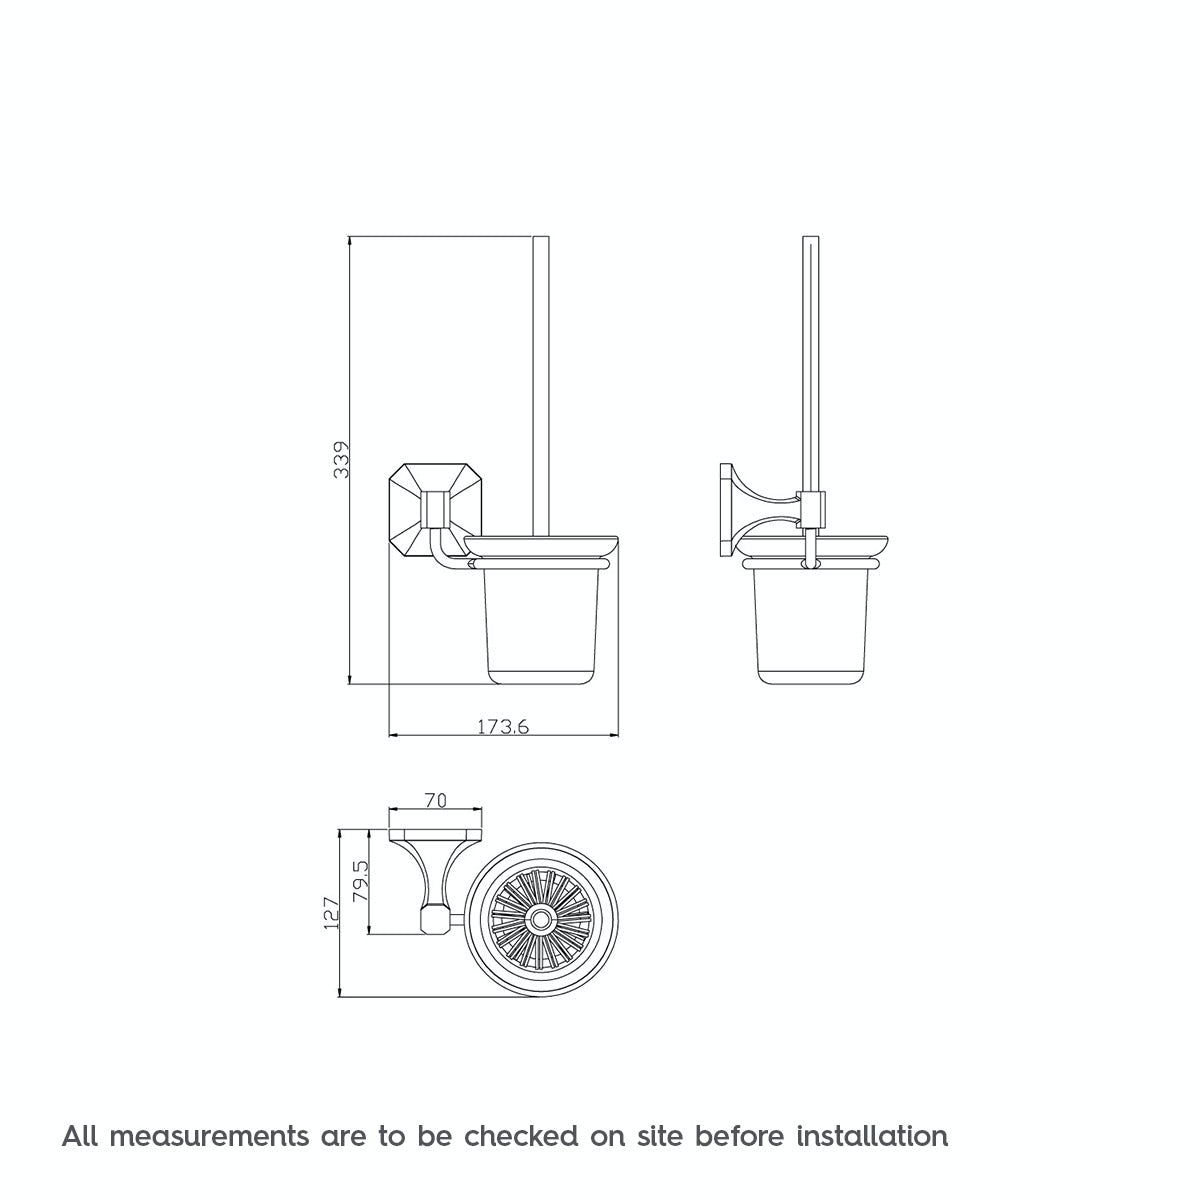 Dimensions for The Bath Co. Camberley toilet brush and ceramic holder